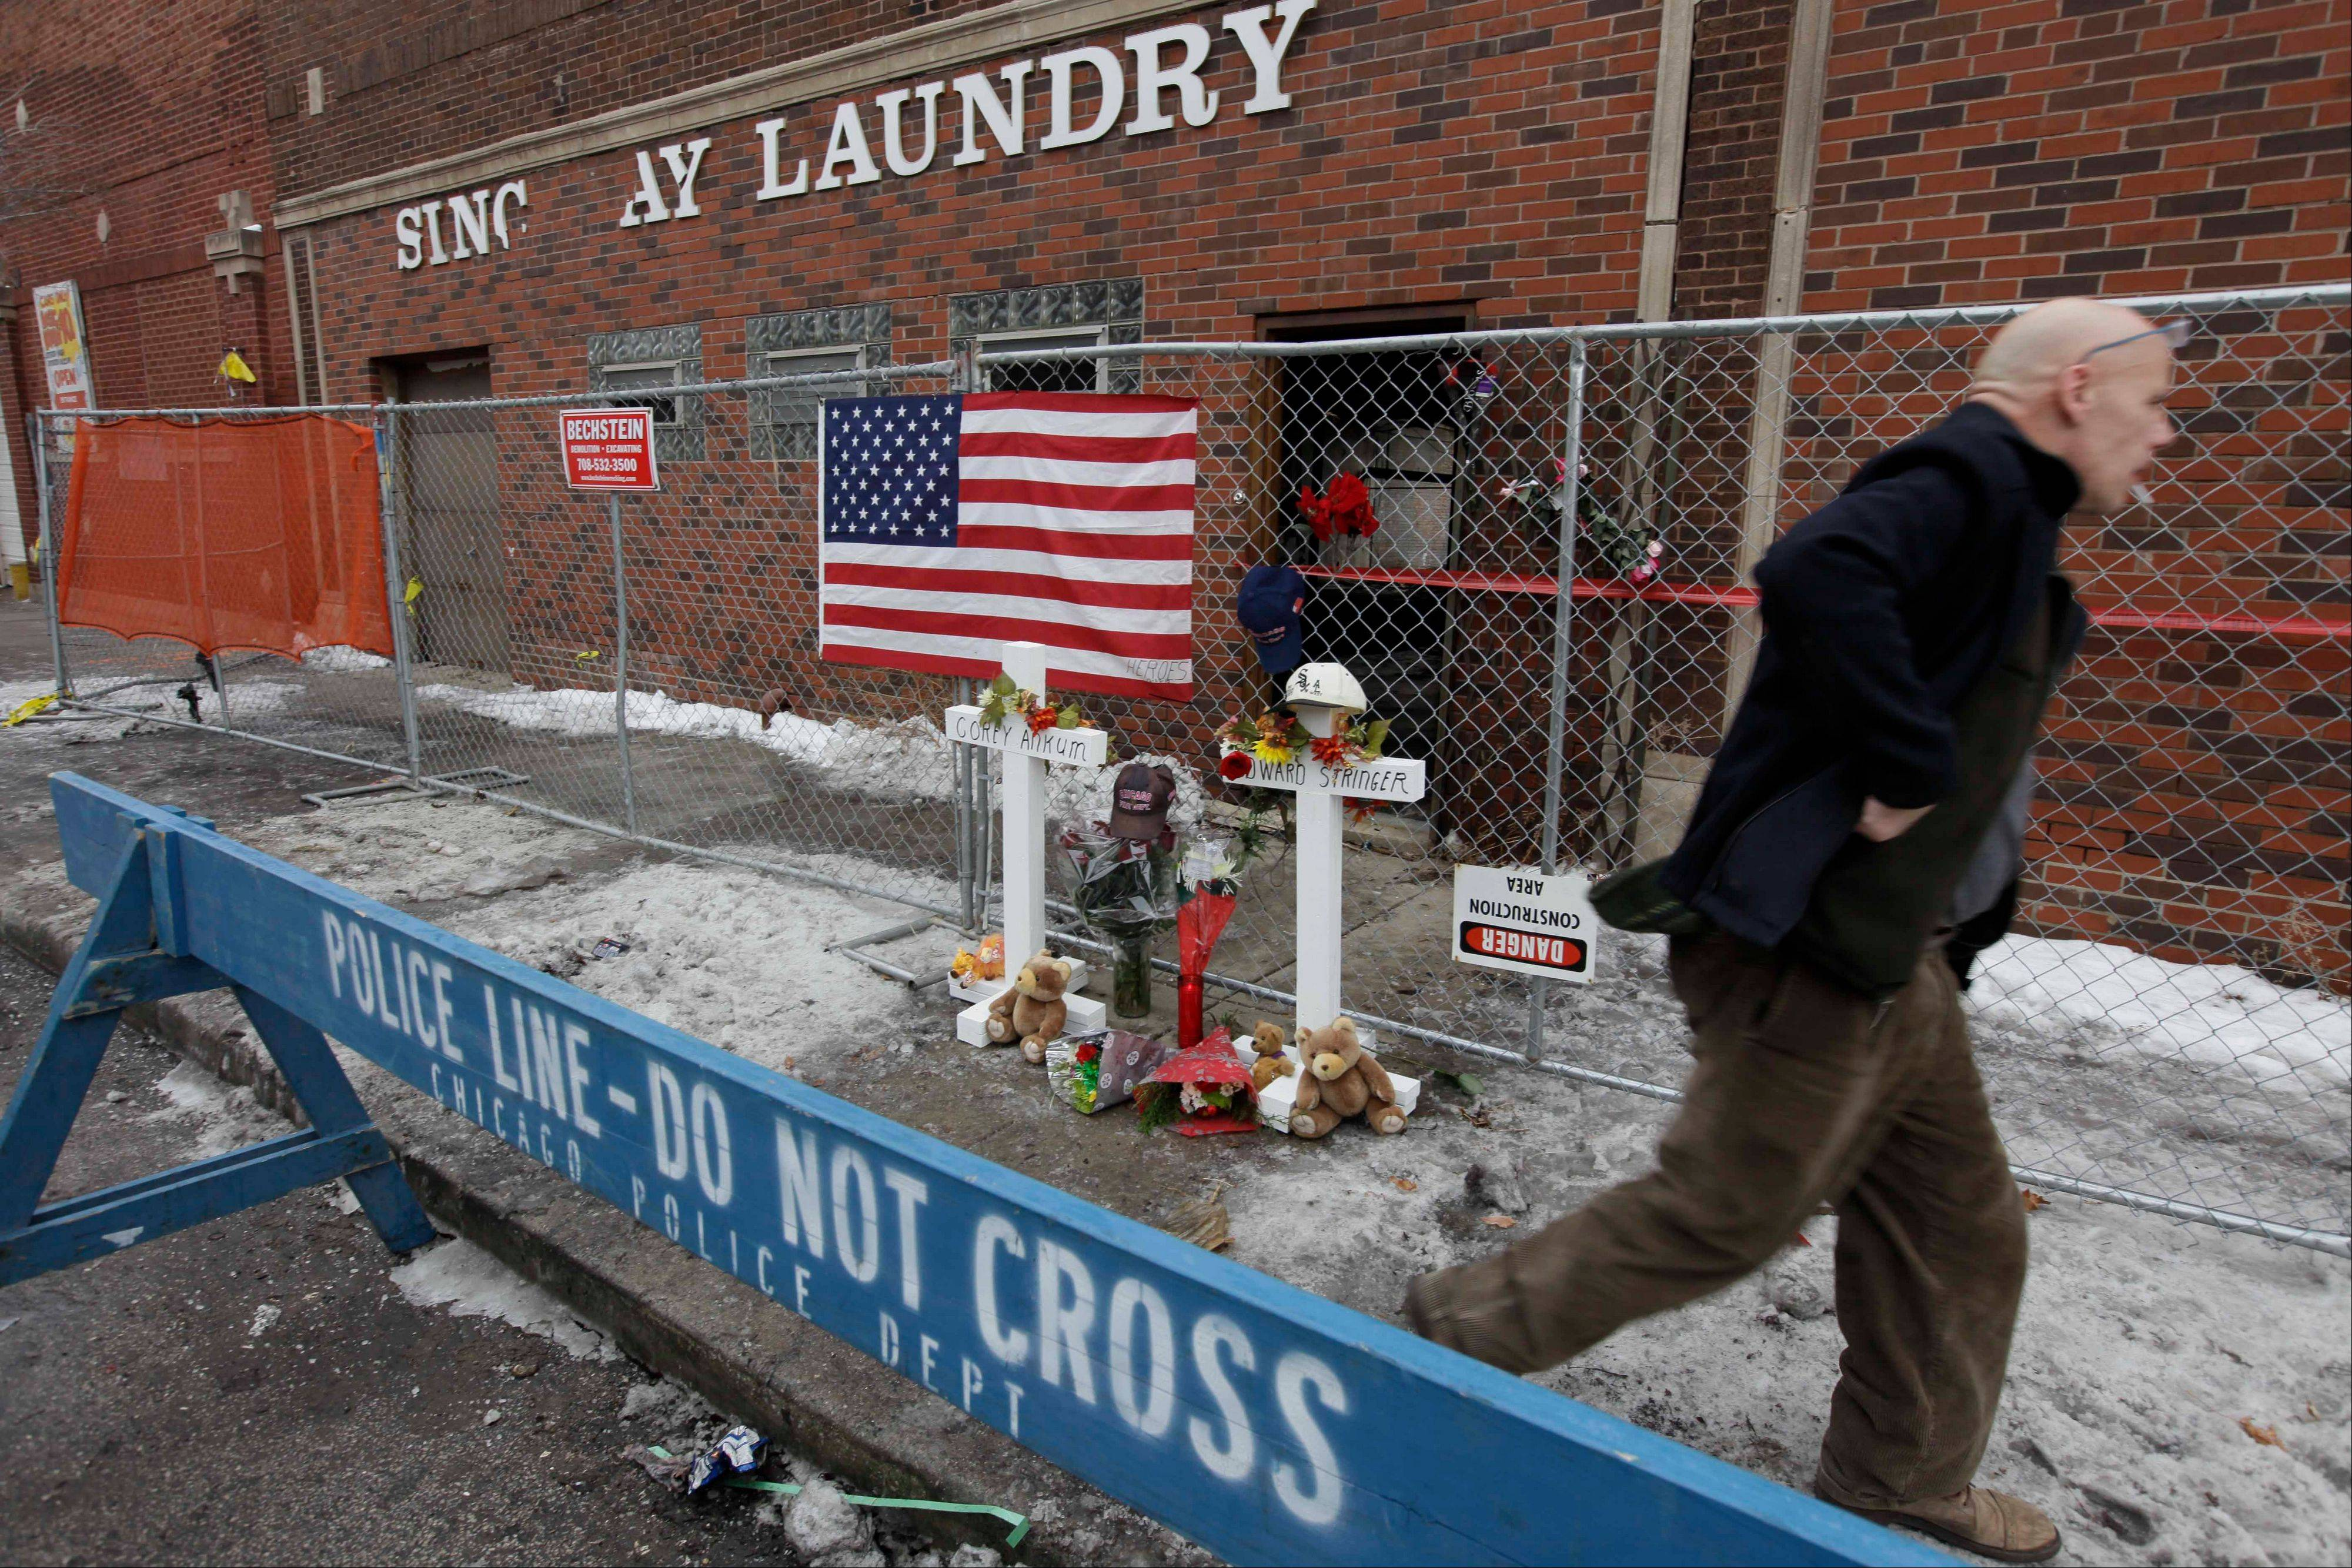 Feds: Poor communication contributed to firefighter deaths